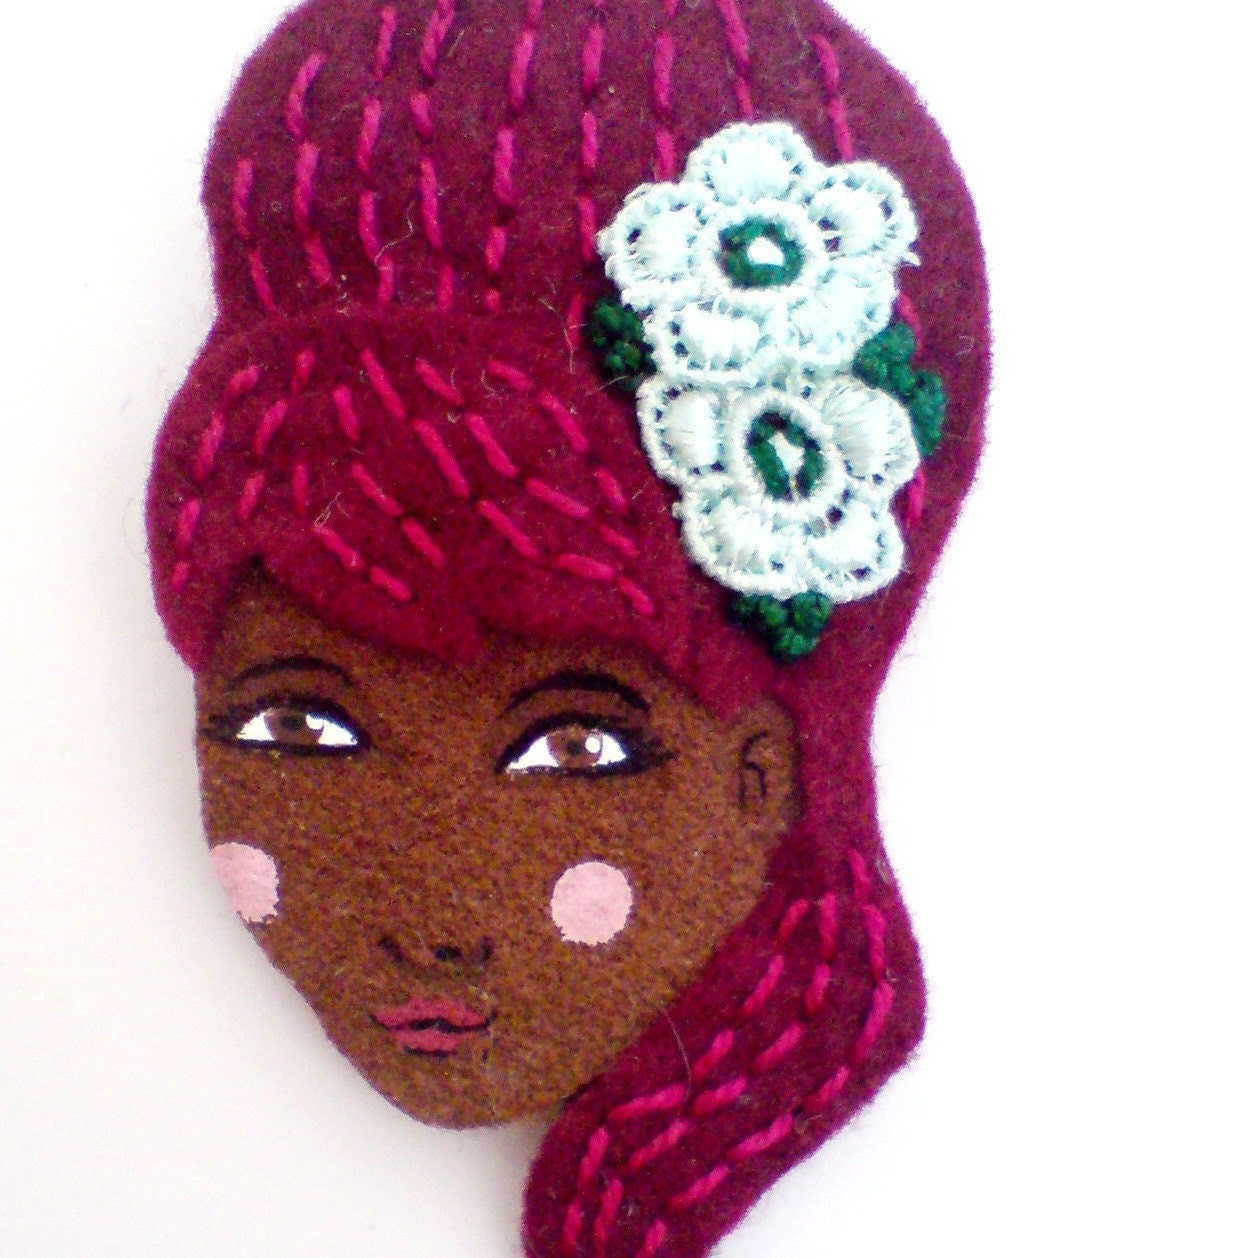 Embroidered felt brooch - Brieana, 1960a inspired, b52, burgundy, mint, woman face